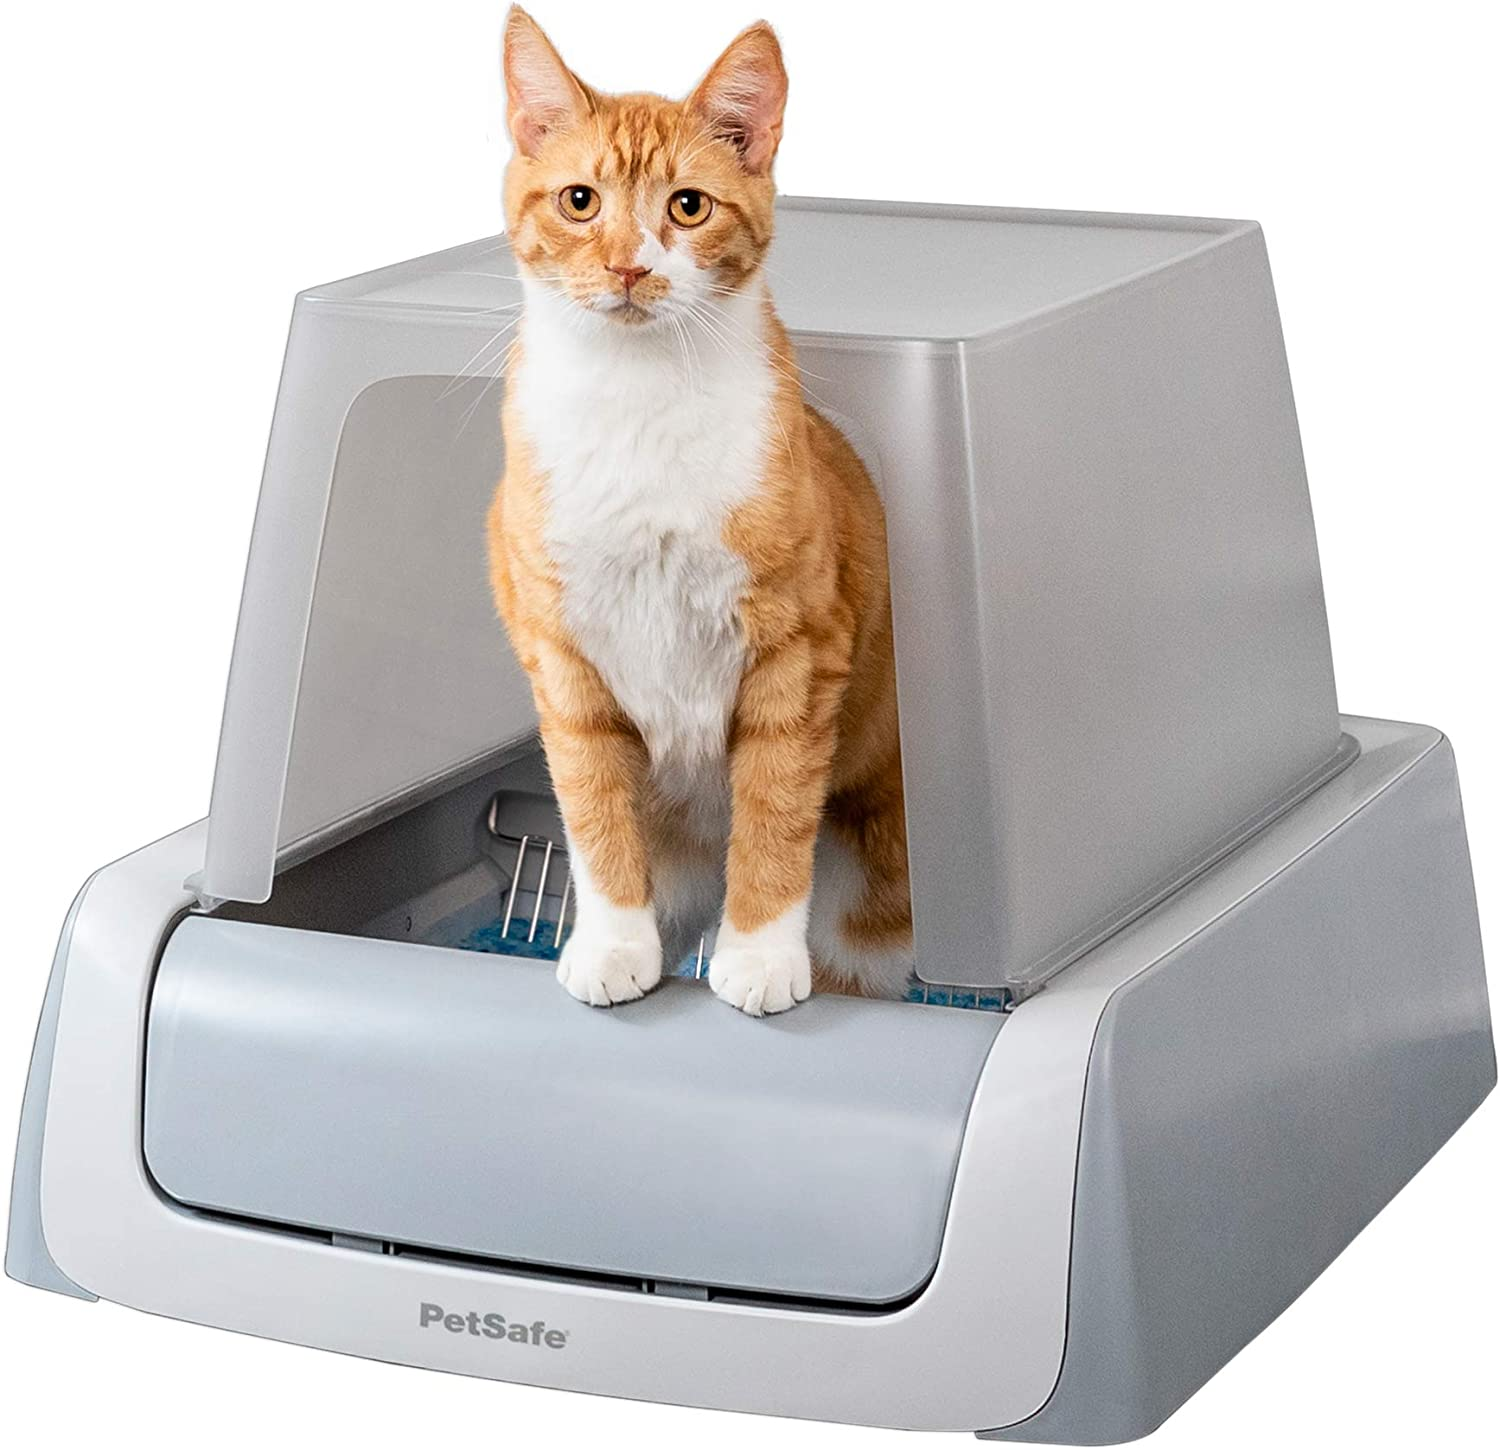 Top 10 Best Self Cleaning Litter Box For Large Cats [Updated November 2020] 10